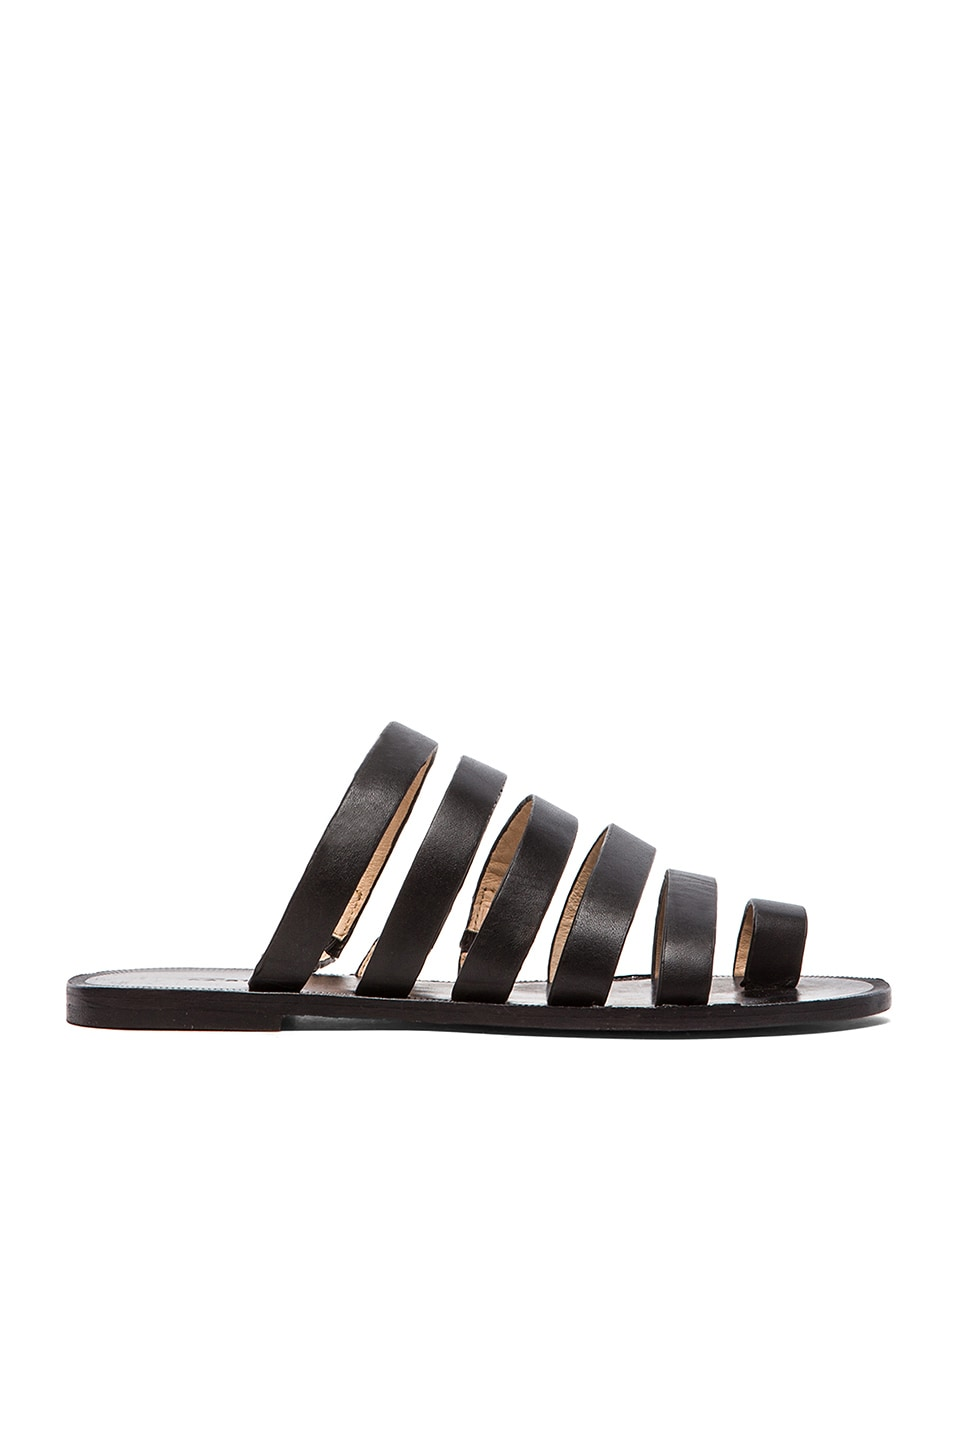 Matiko May Sandal in Black